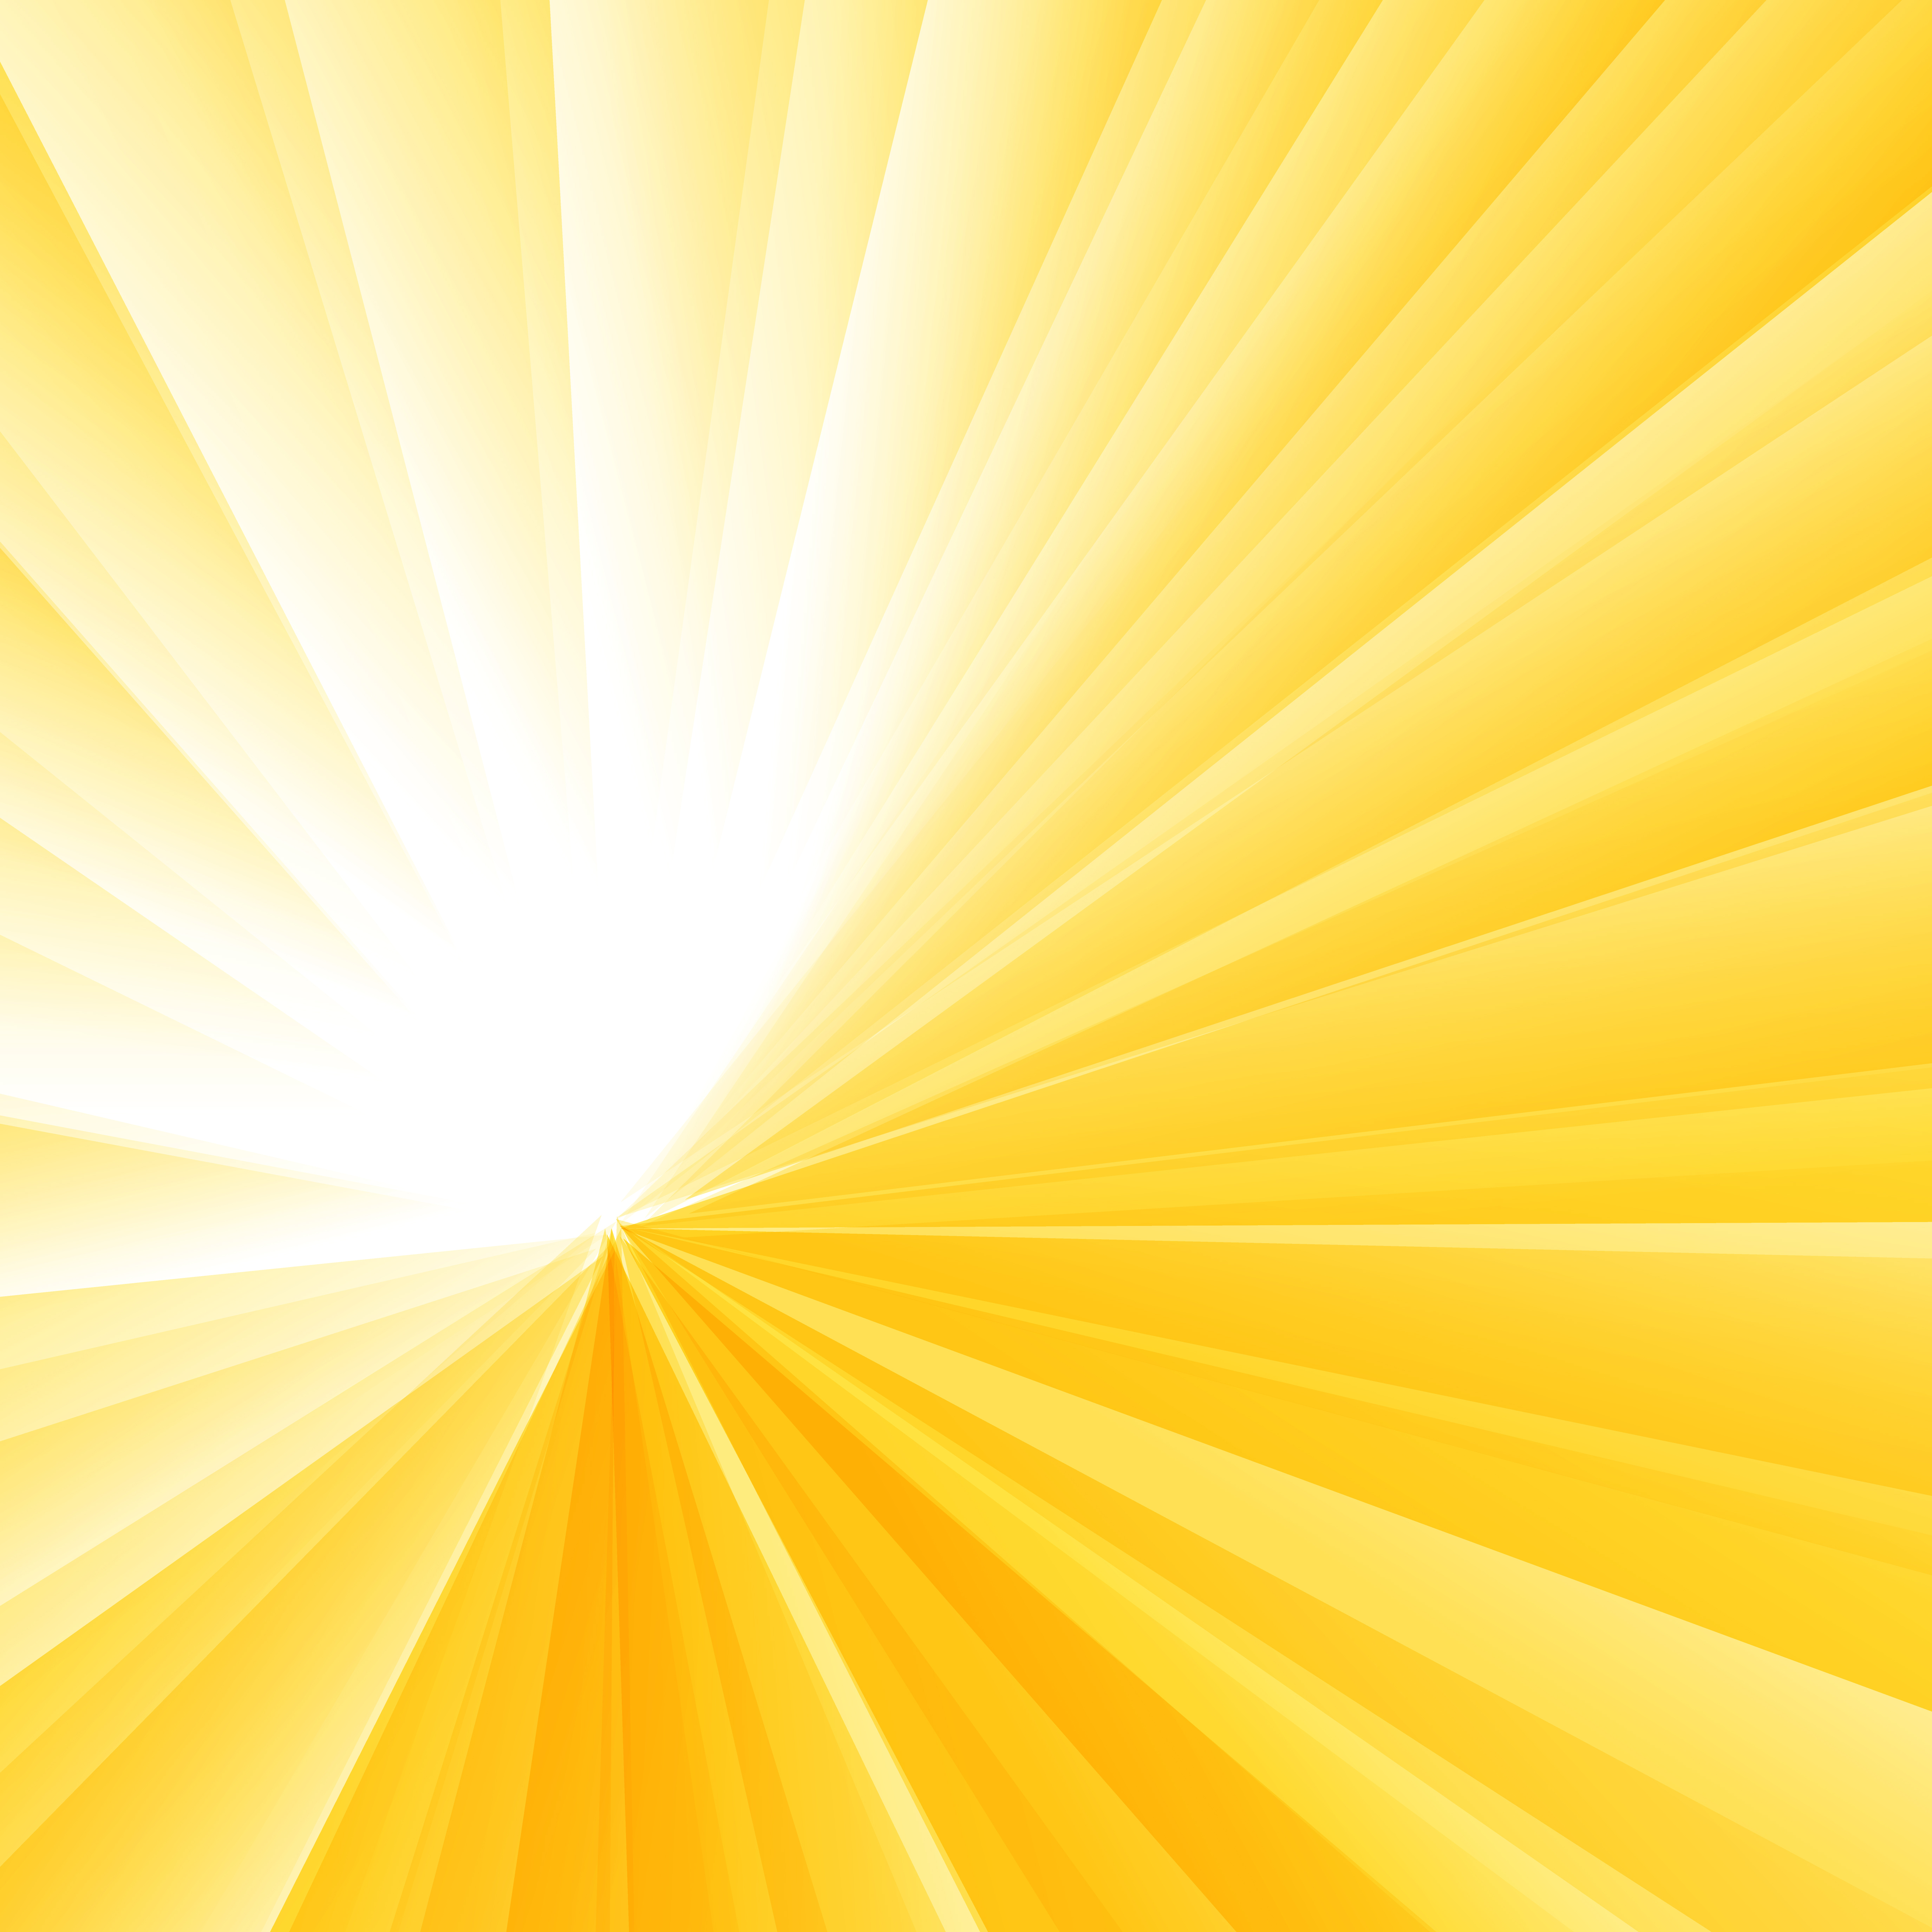 Abstract Light Burst Yellow Radial Gradient Background